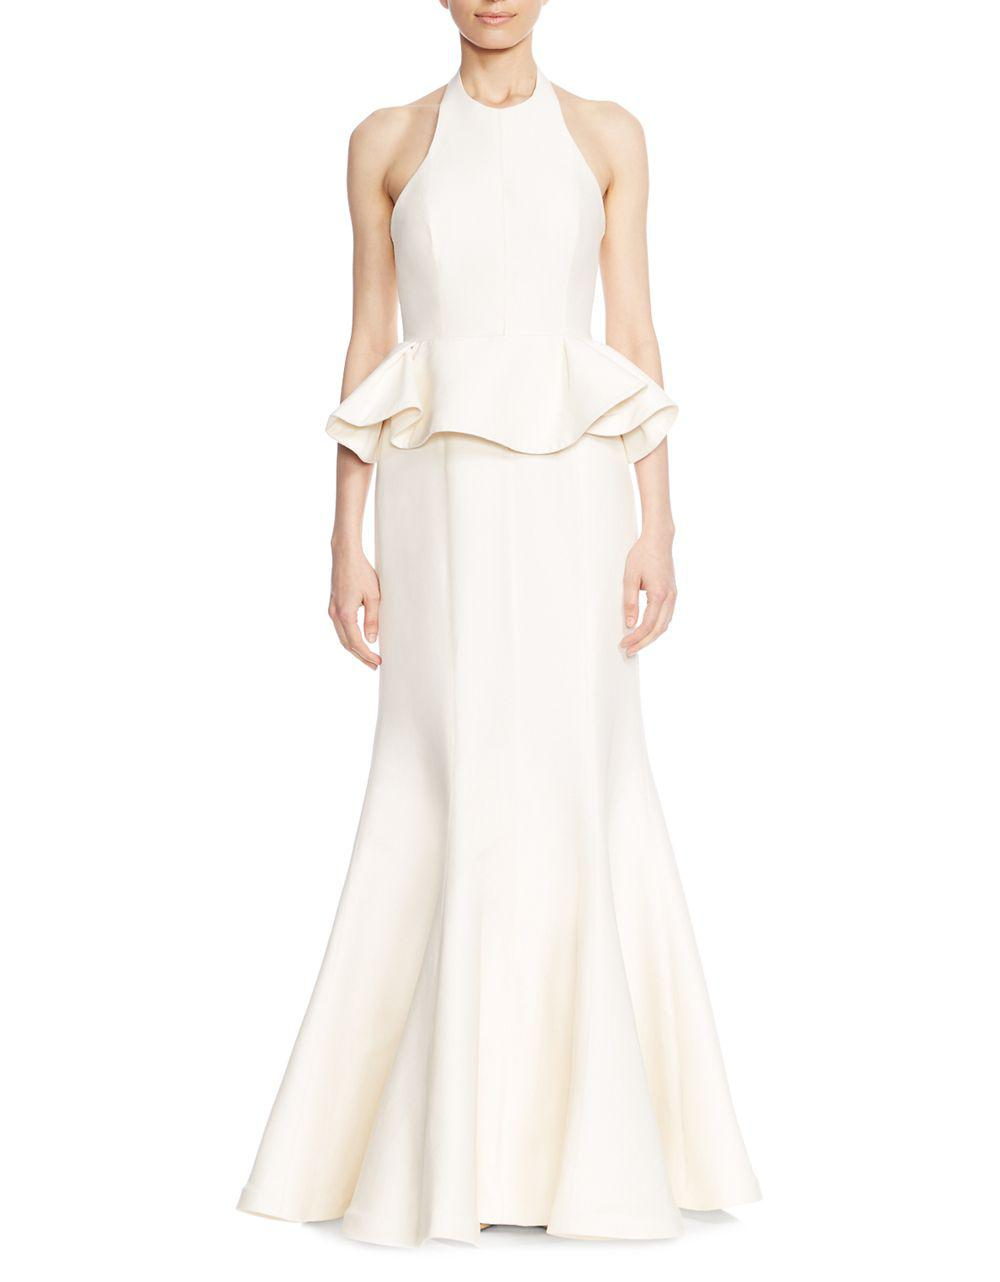 Lyst - Halston Heritage Flared Ruffled Evening Gown in Natural